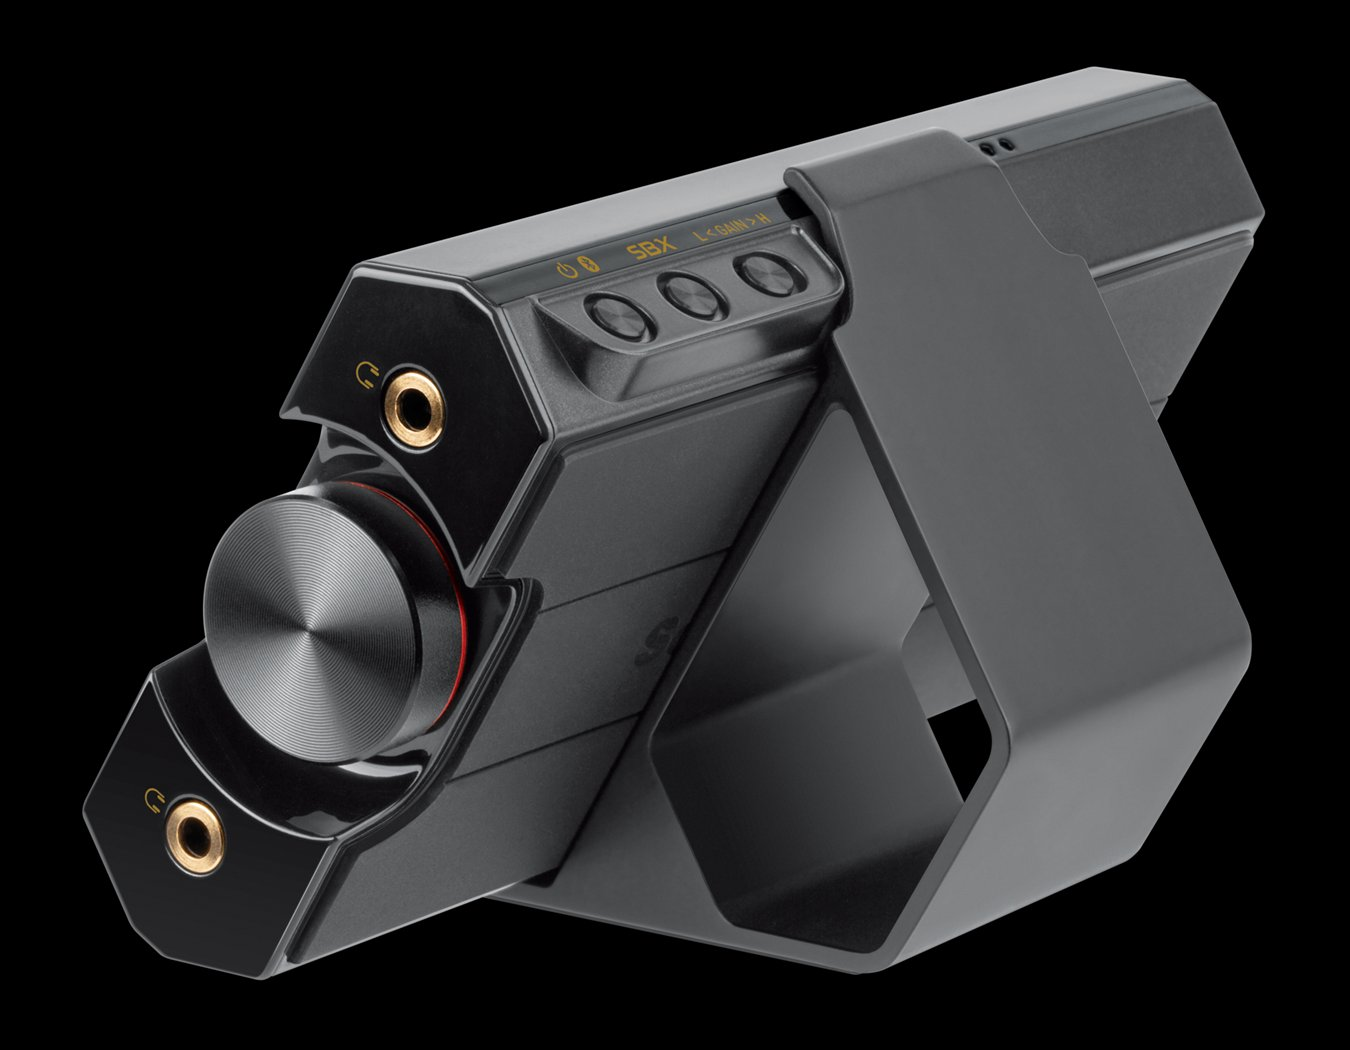 Creative Sound Blaster E5: The First Gaming Sound Card for